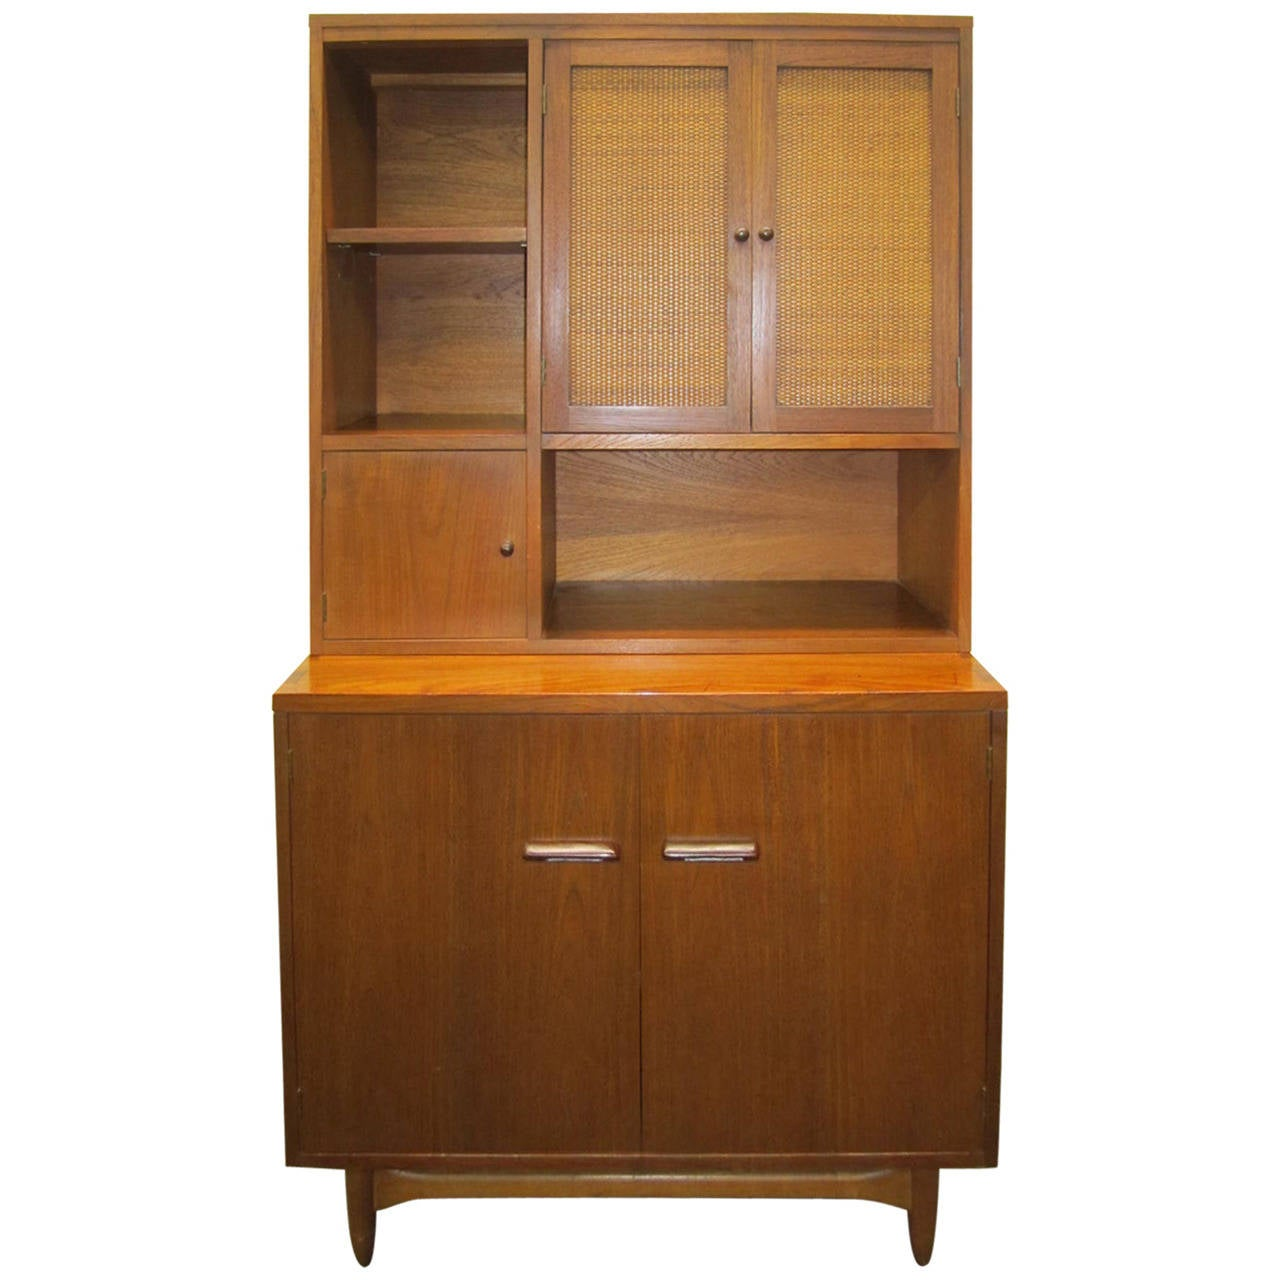 Rare Lane Acclaim Cabinet Caned Hutch, Mid-Century Modern 1